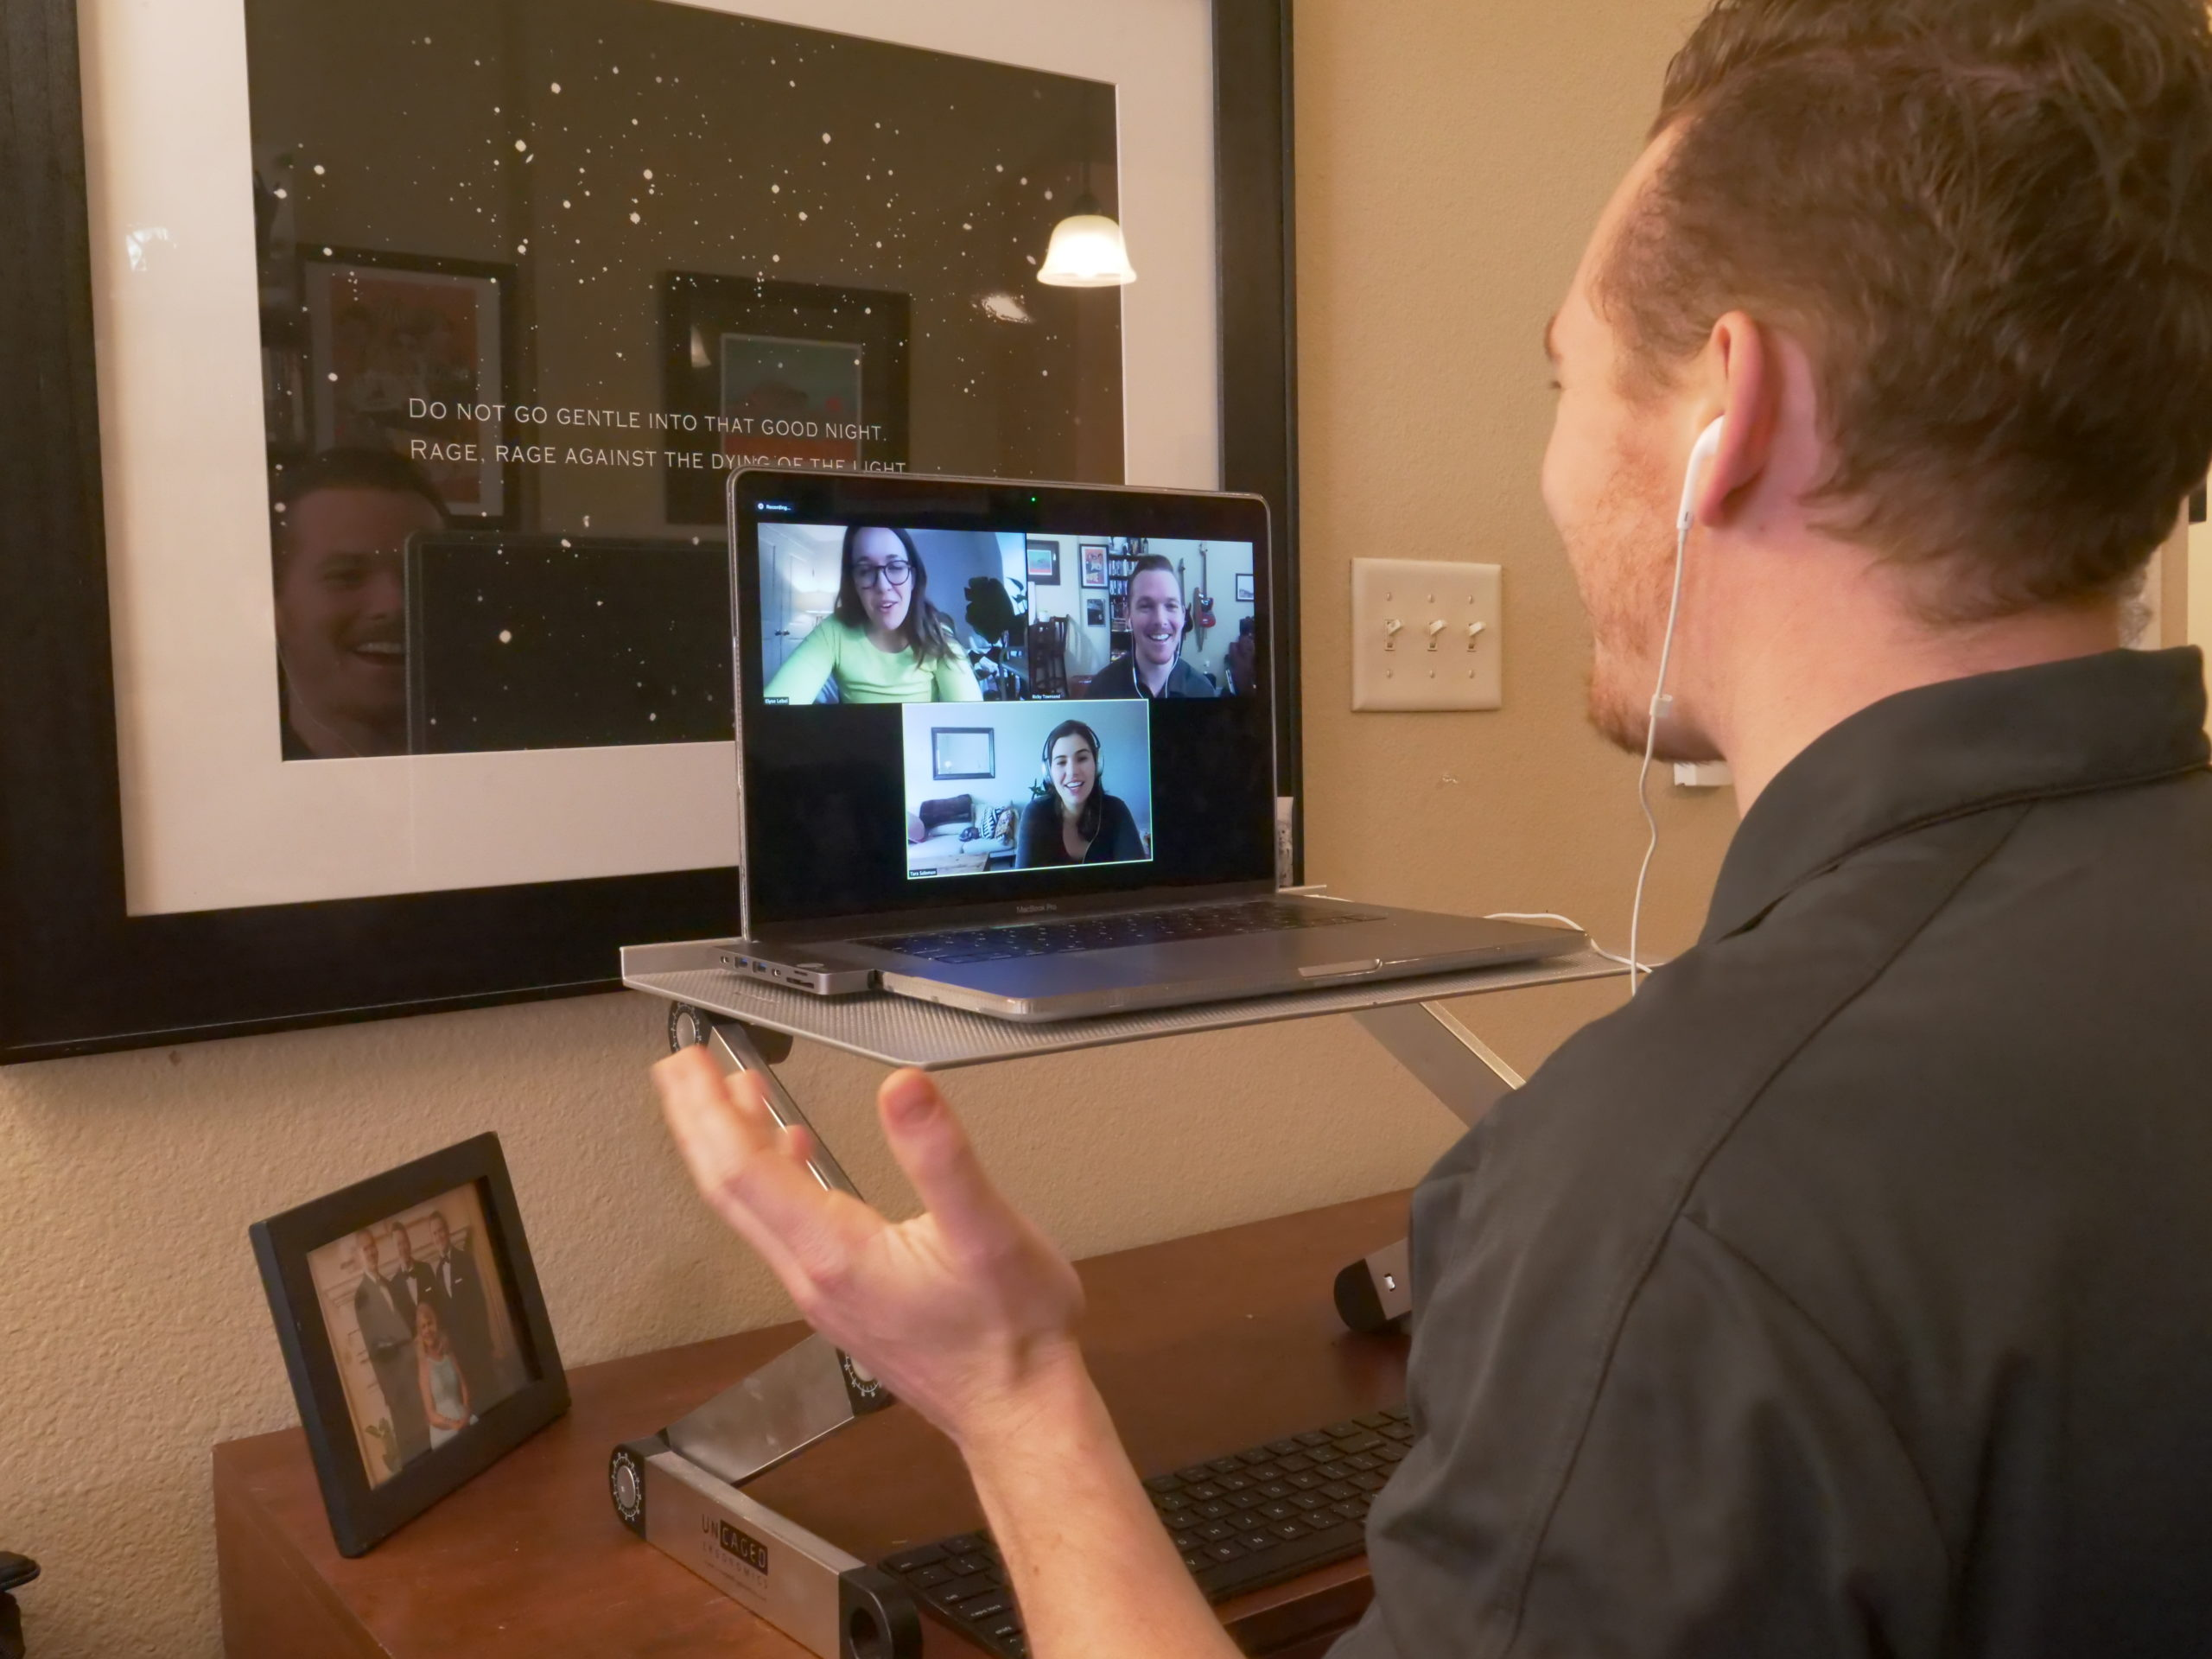 A Caucasian male chatting during a video conference call